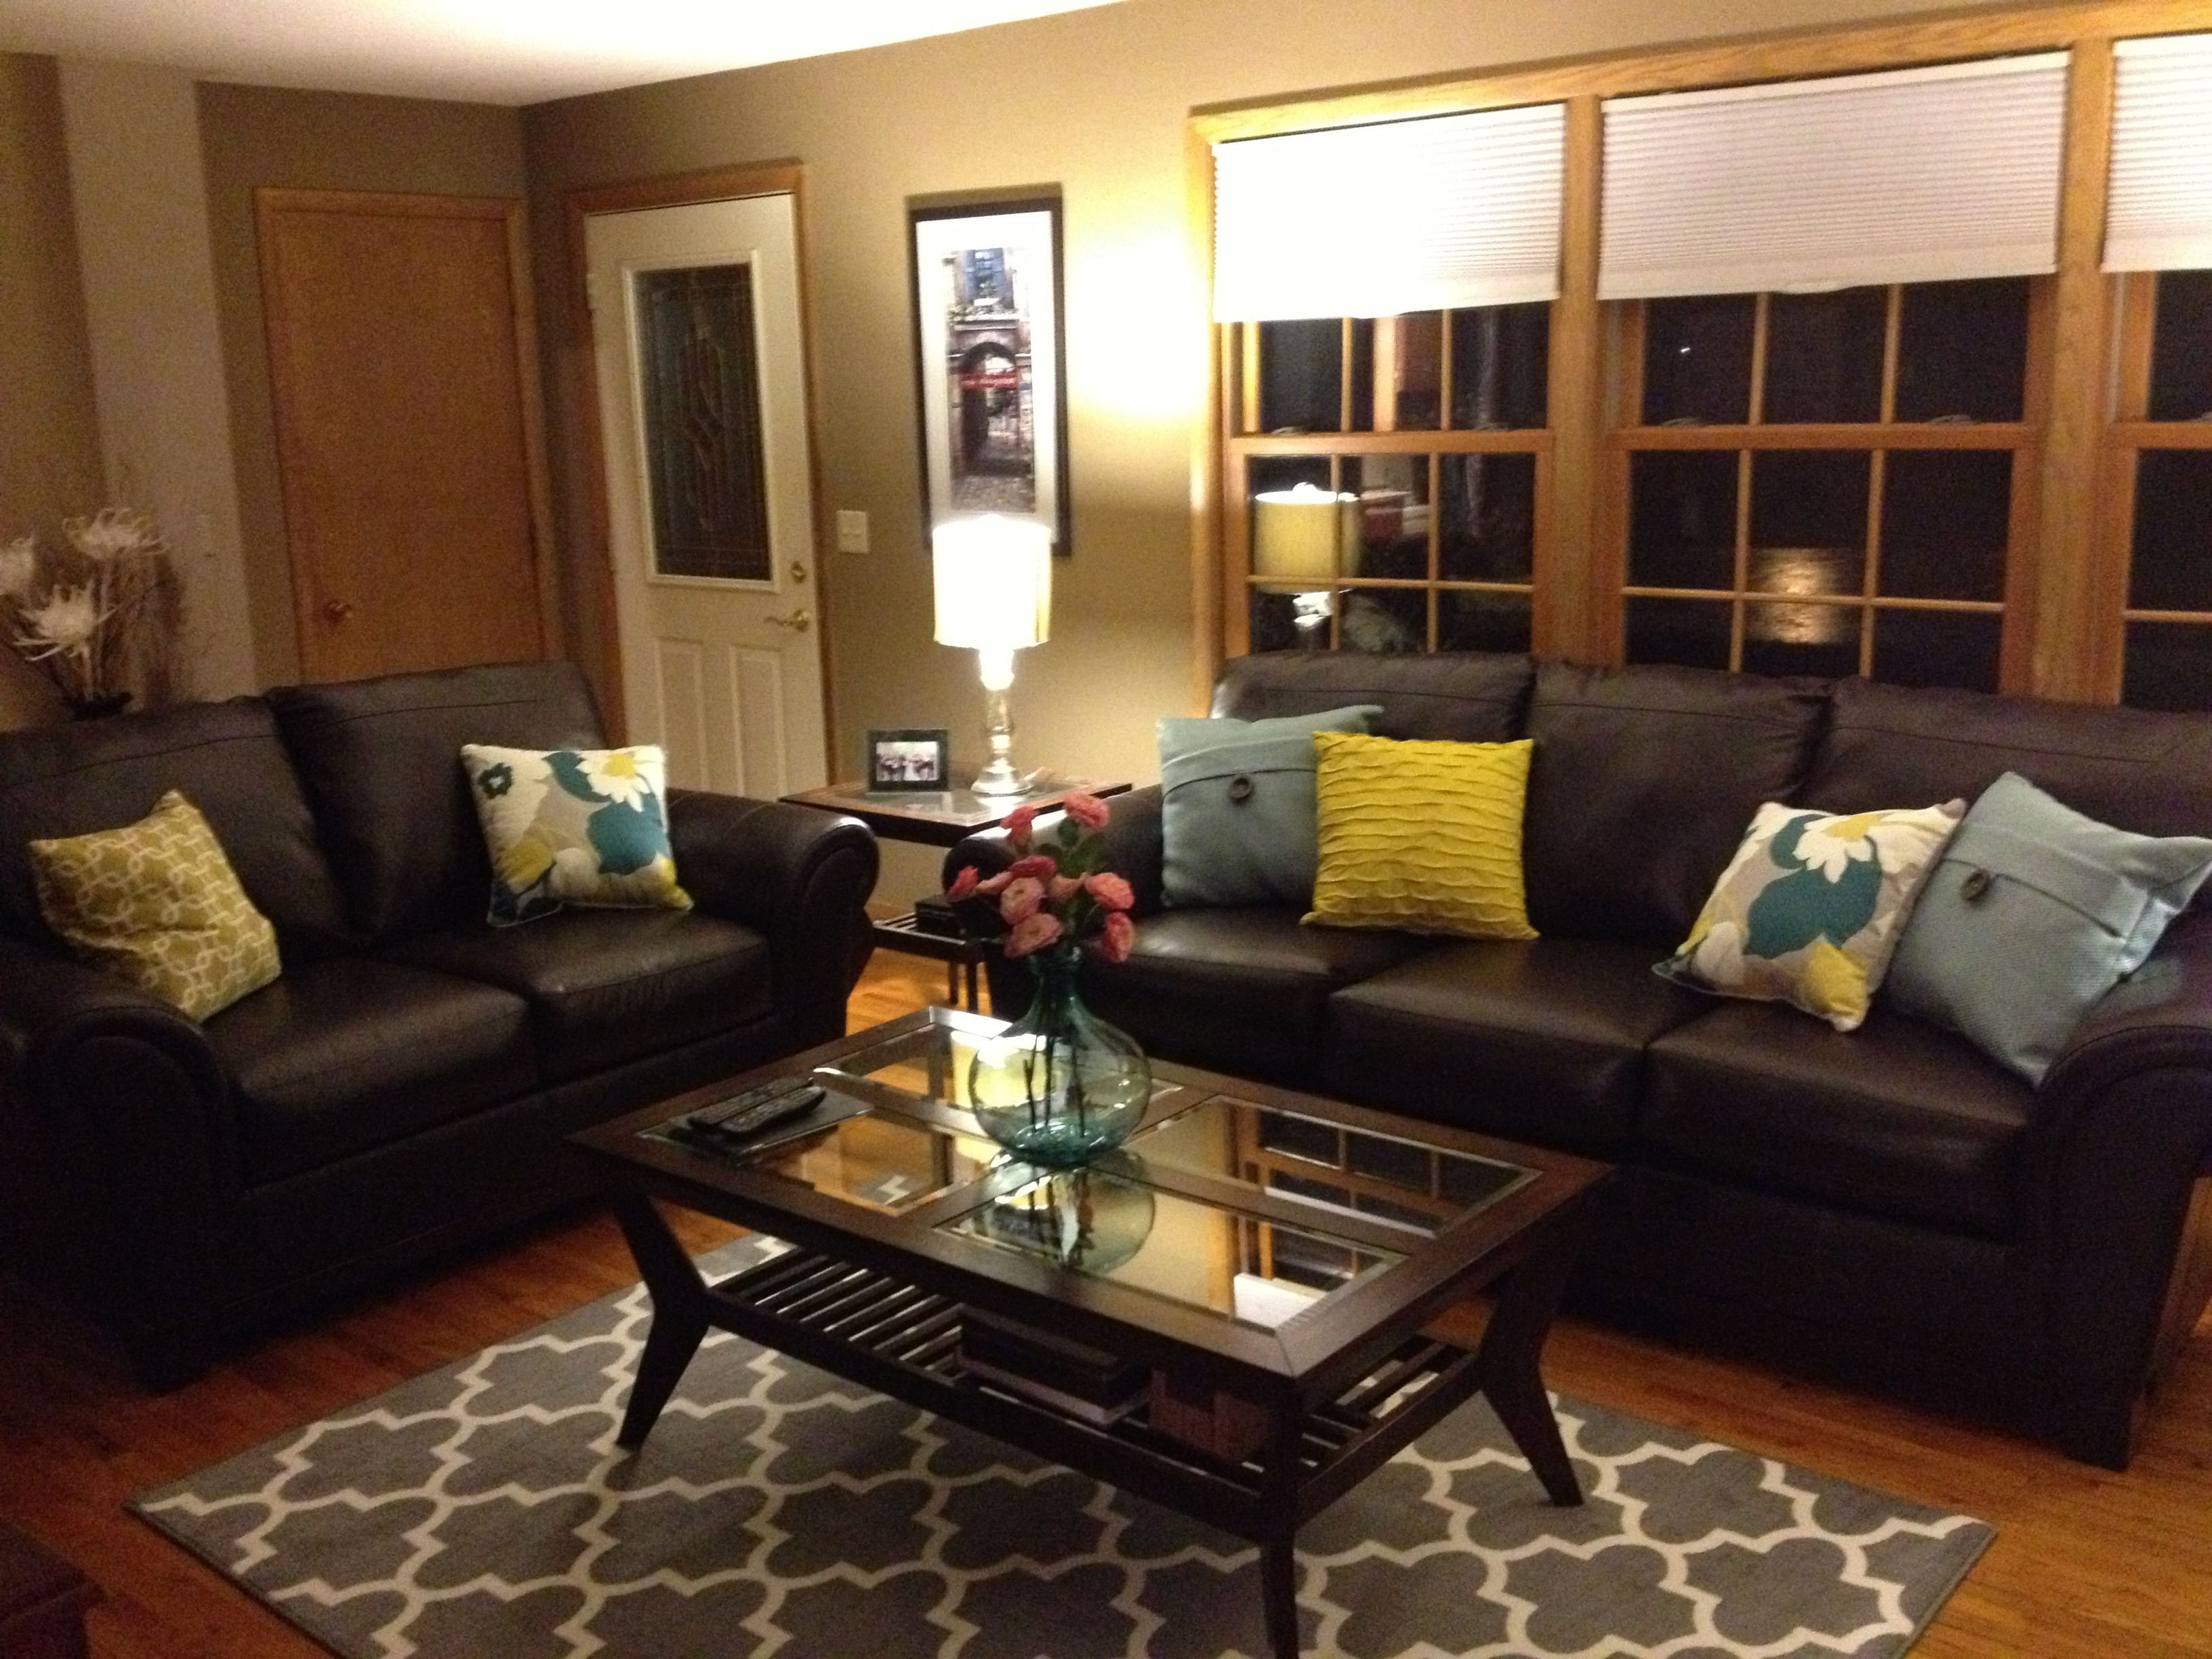 Brown sofa Living Room Decor Awesome Brown Leather sofa and Colorful Pillows Funky Living Room